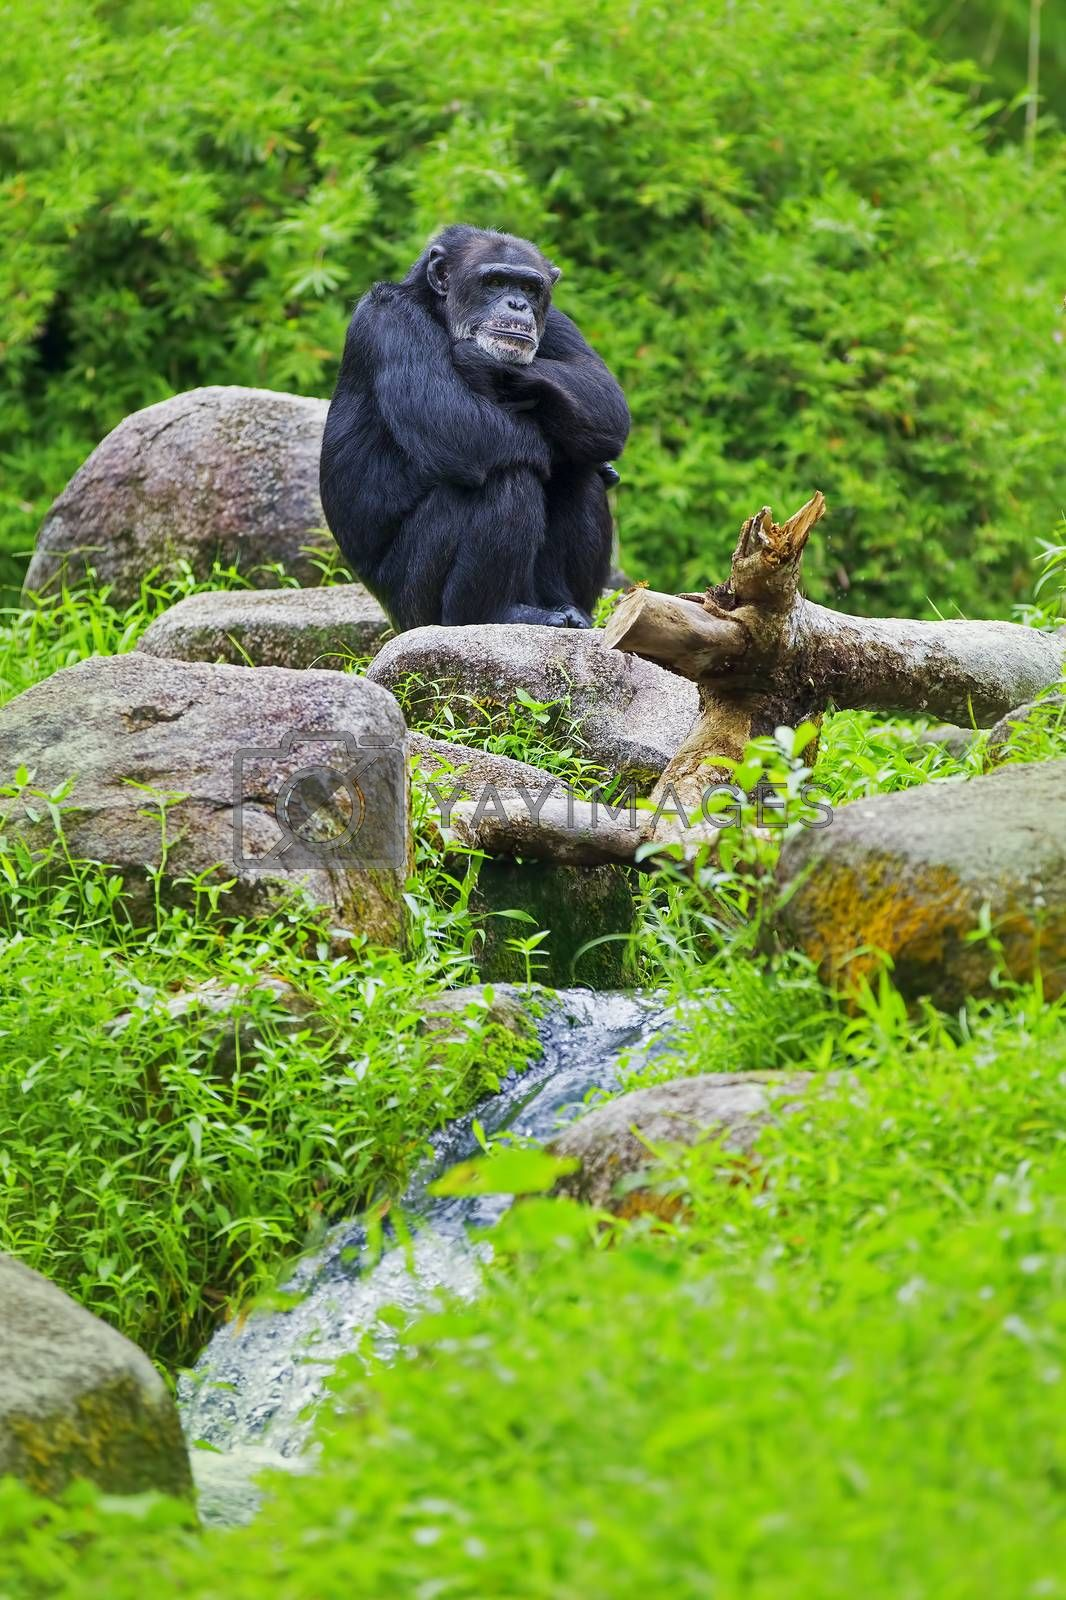 Common Chimpanzee sitting next to a river in the wild